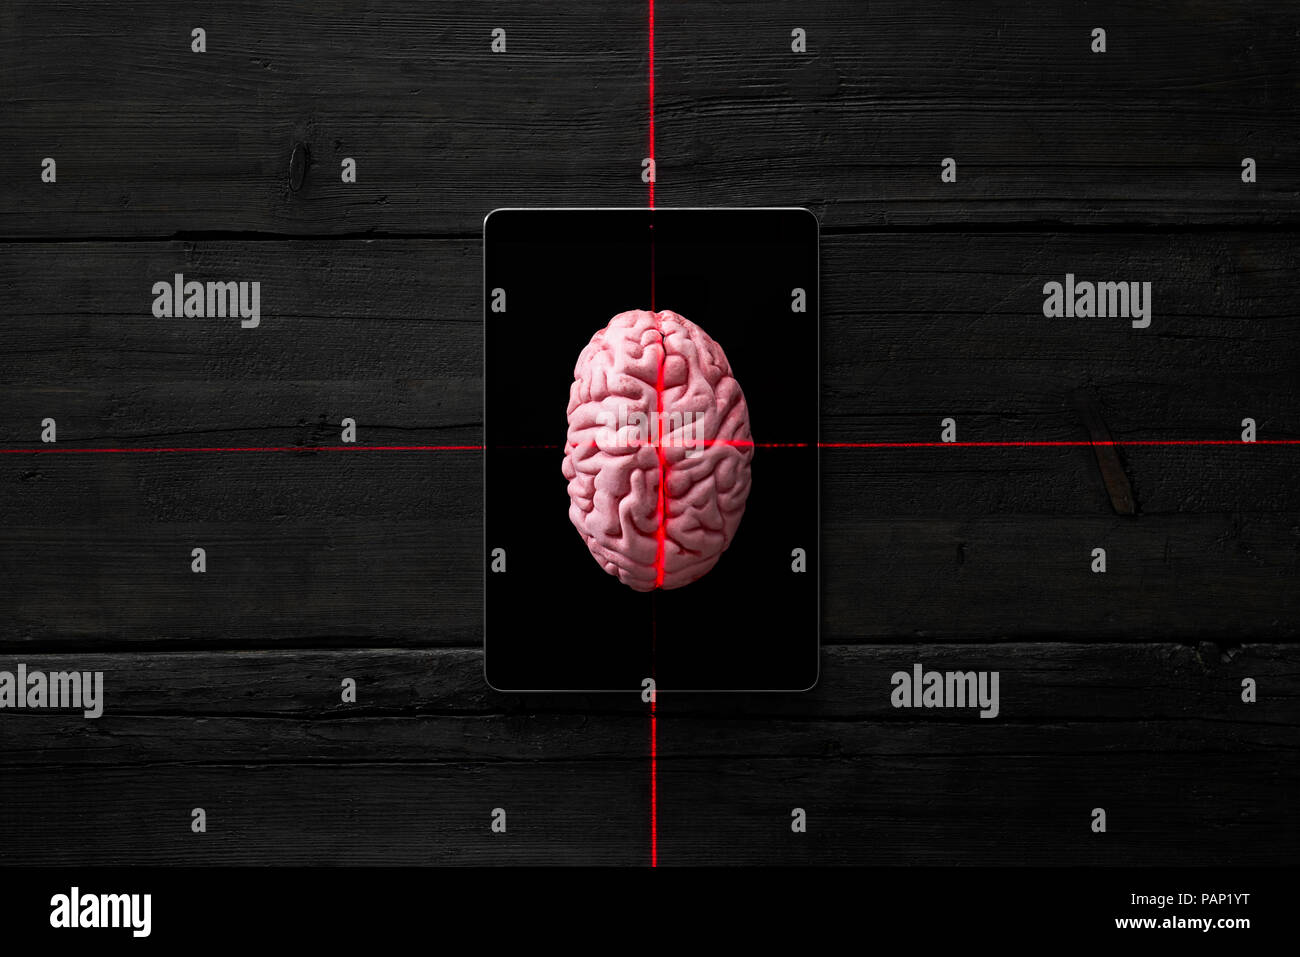 Artificial intelligence, brain on digital tablet getting measured - Stock Image